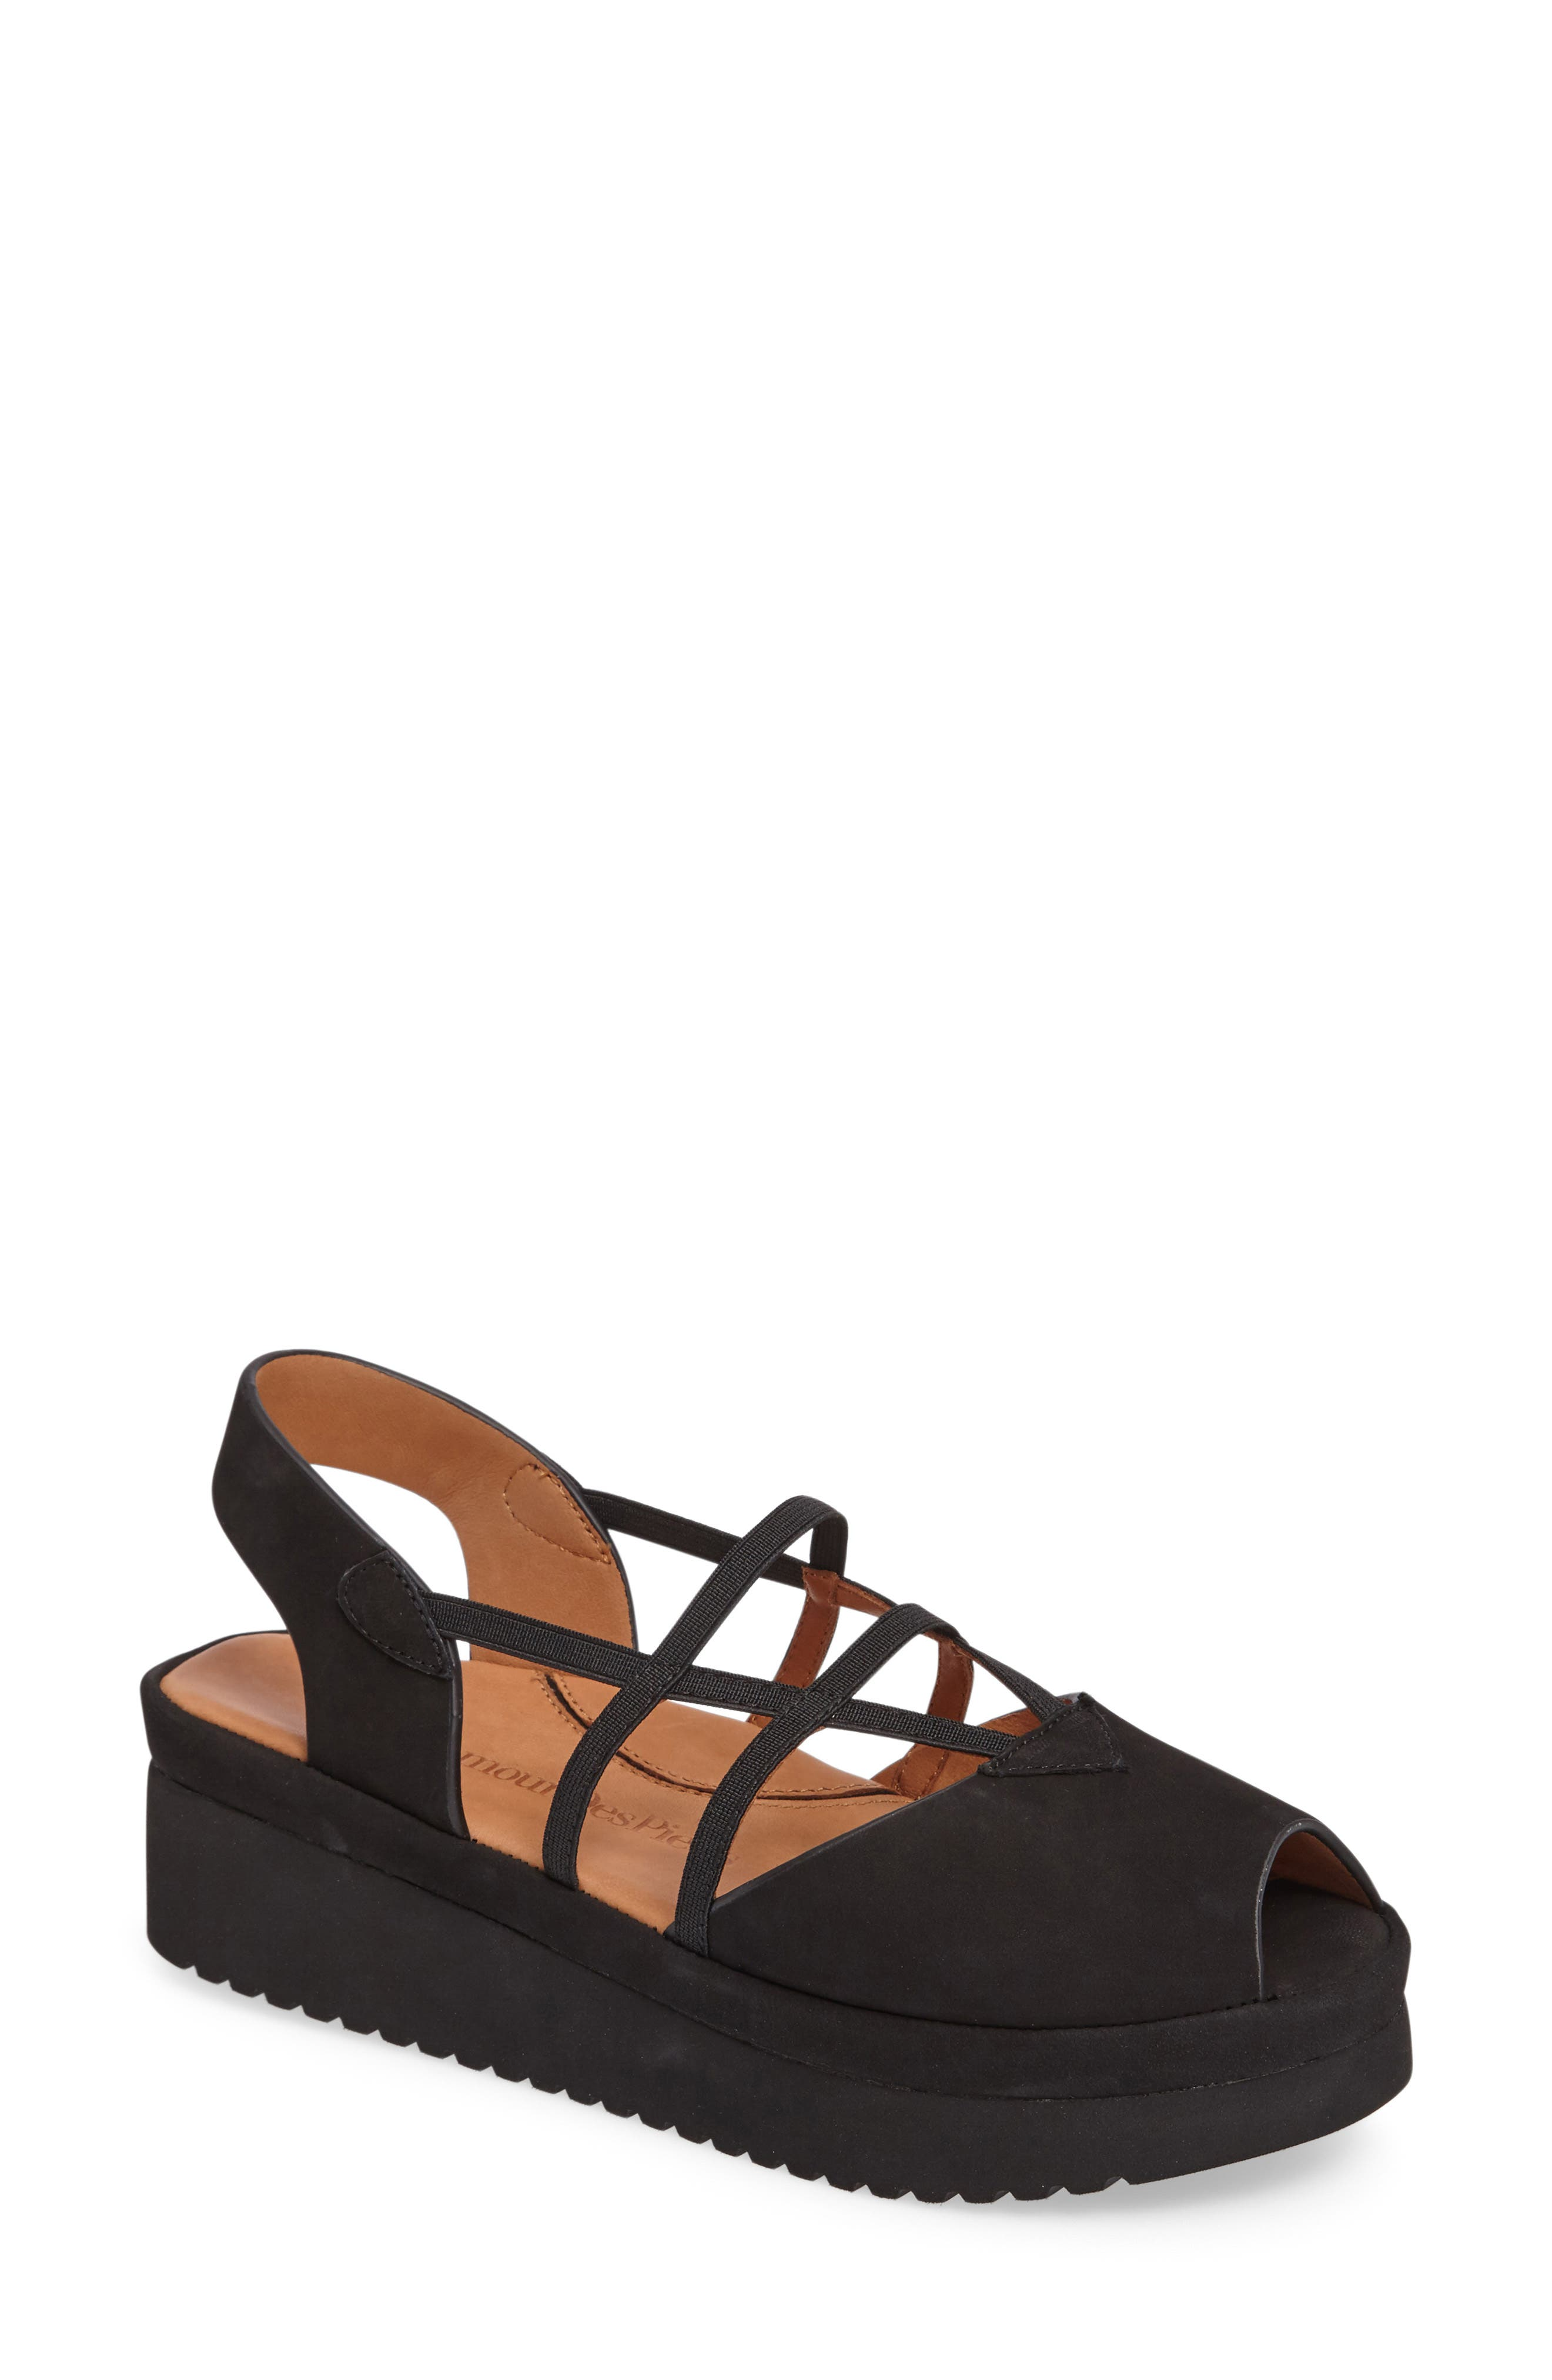 Adelais Platform Wedge Sandal,                         Main,                         color, BLACK NUBUCK LEATHER